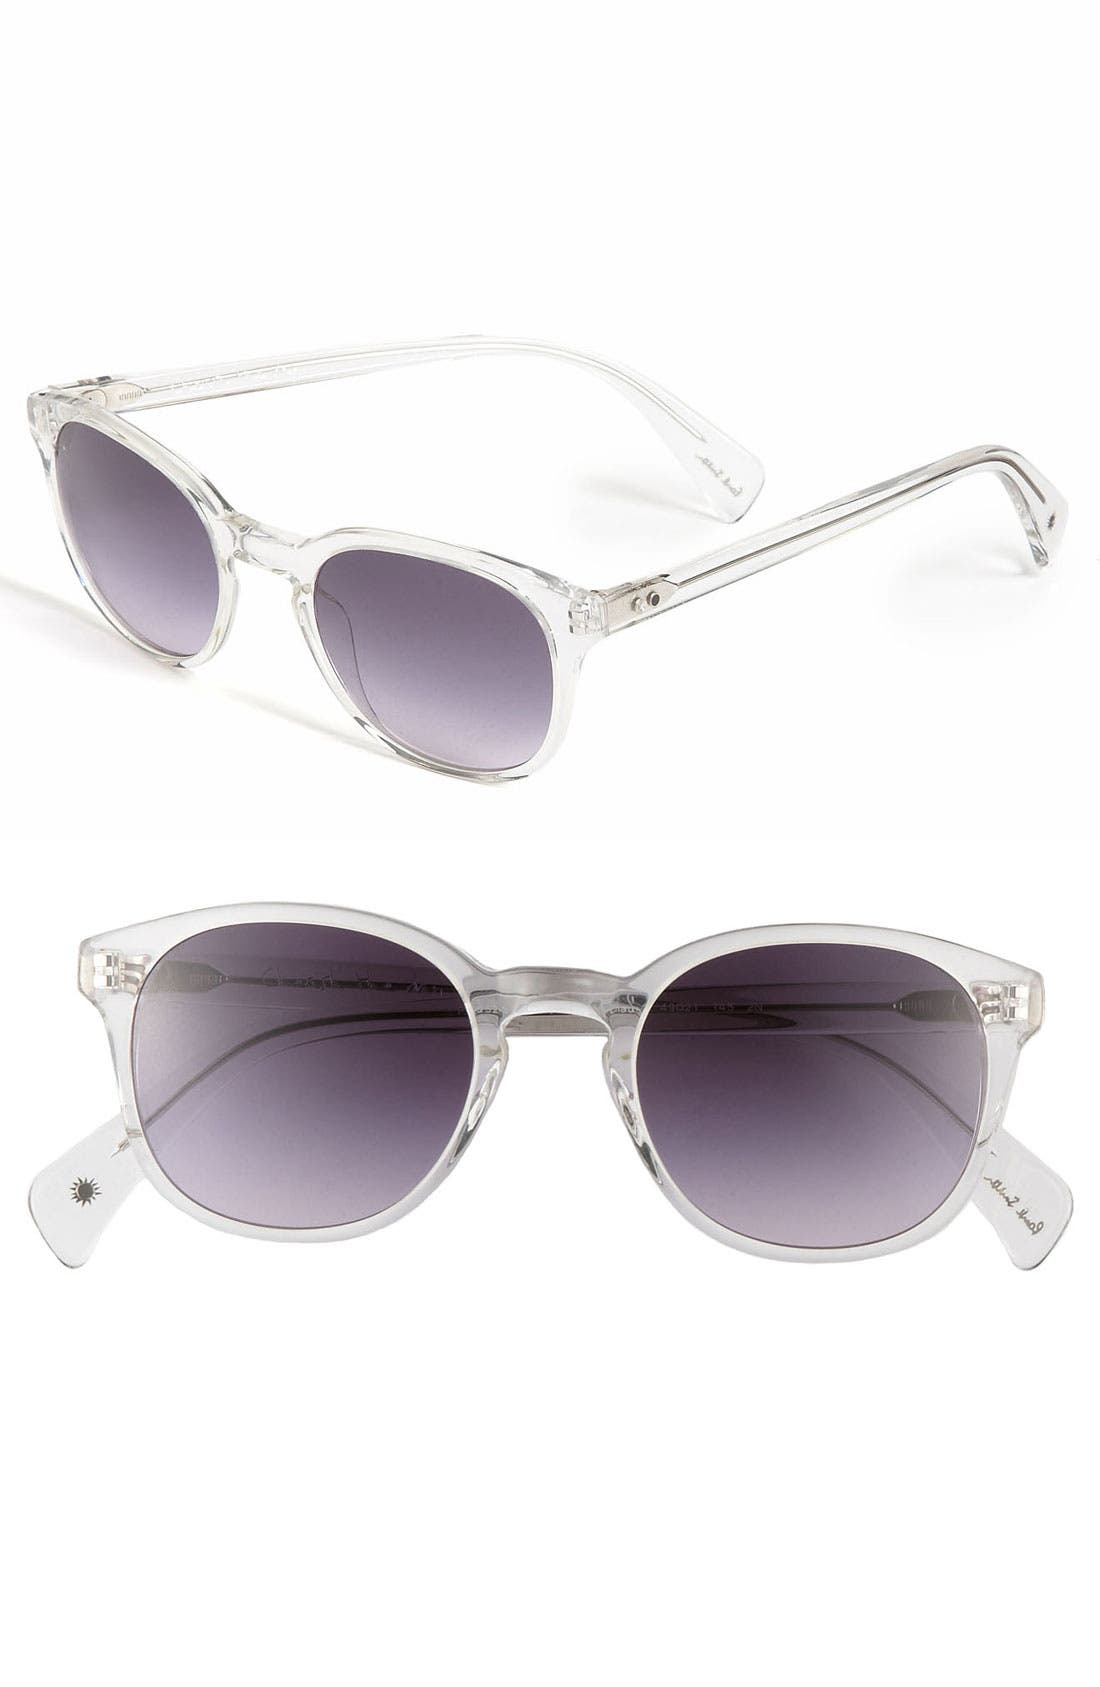 Alternate Image 1 Selected - Paul Smith 'Chaucer' 49mm Sunglasses